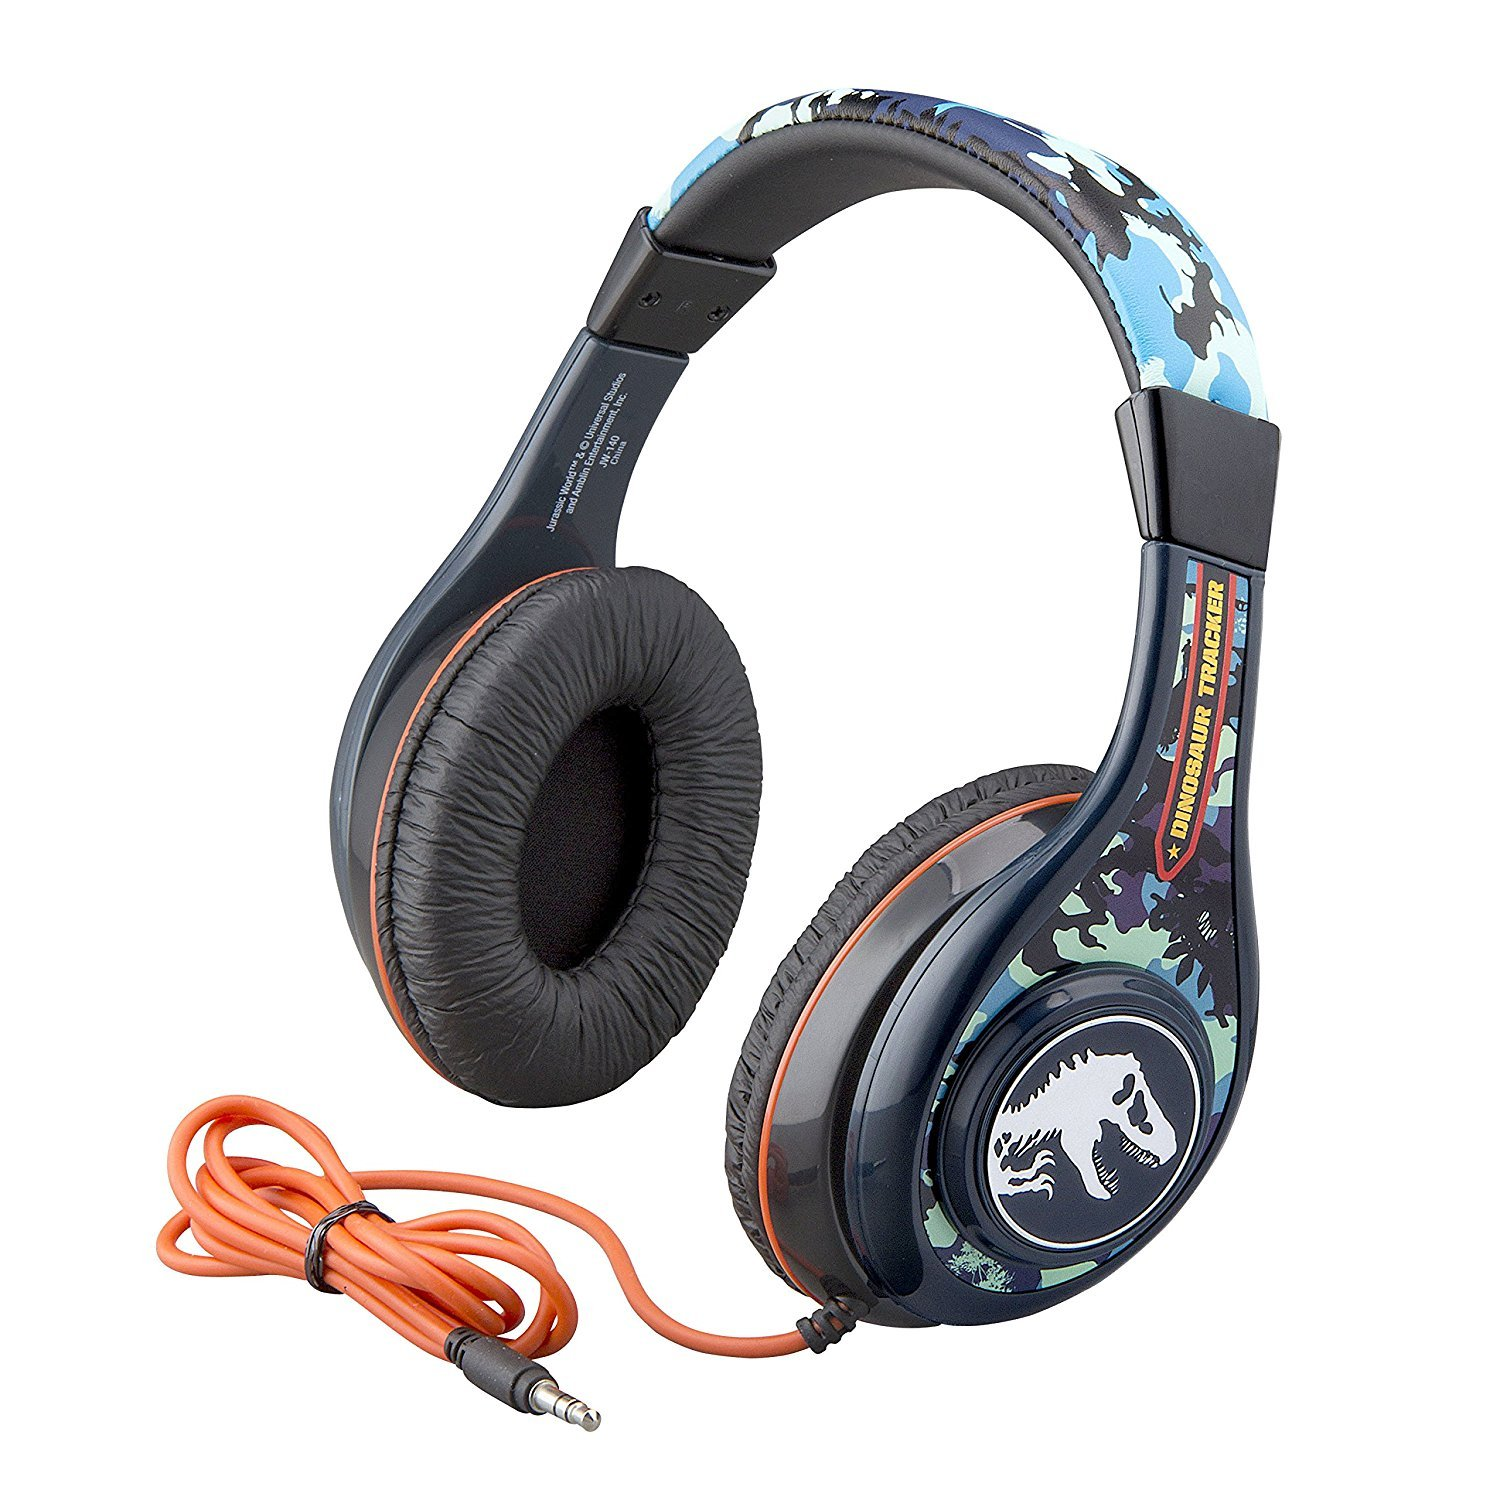 Jurassic World Fallen Kingdom Headphones for Kids with Built in Volume Limiting Feature for Kid Friendly Safe Listening